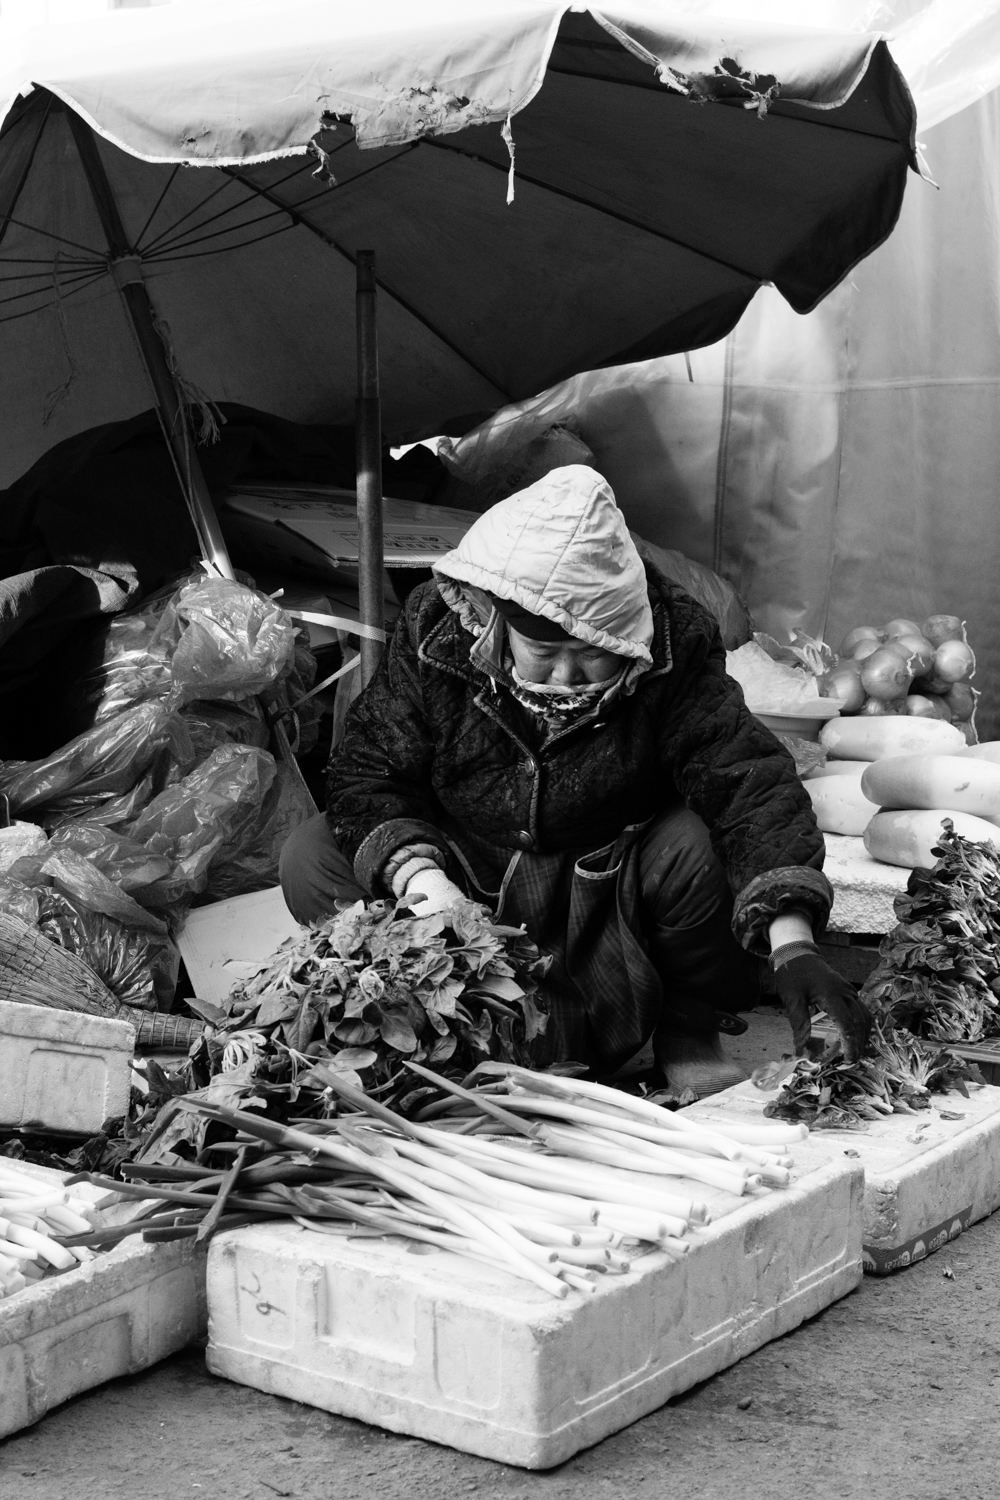 Another of the poorer merchants, these vendors are unable to afford the price to rent a stall within the market proper, and so are relegated to the outskirts where they use large umbrellas to protect themselves and their produce from the elements. In the background, you can see the produce on offer from a slightly more well-to-do merchant.